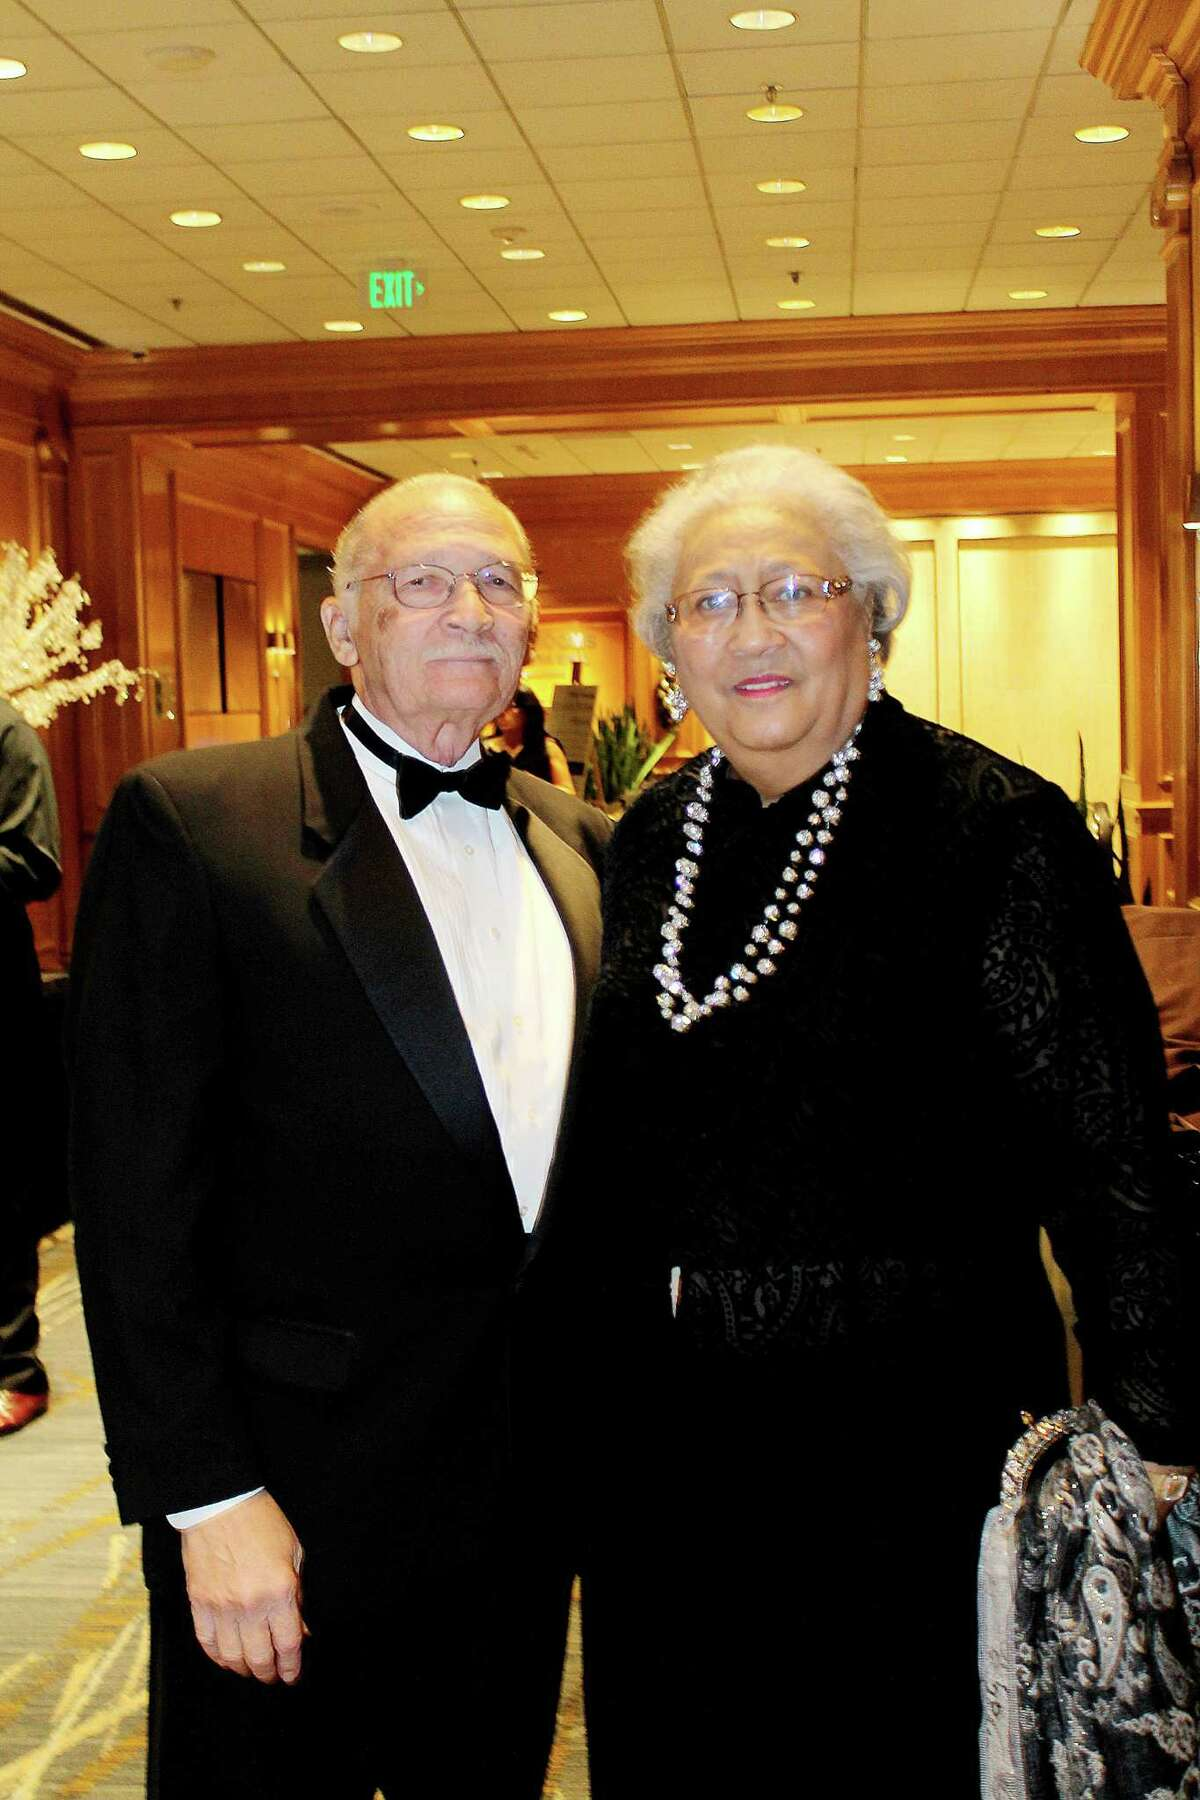 Dr. Edward A.R. Lord and Mildred Lord